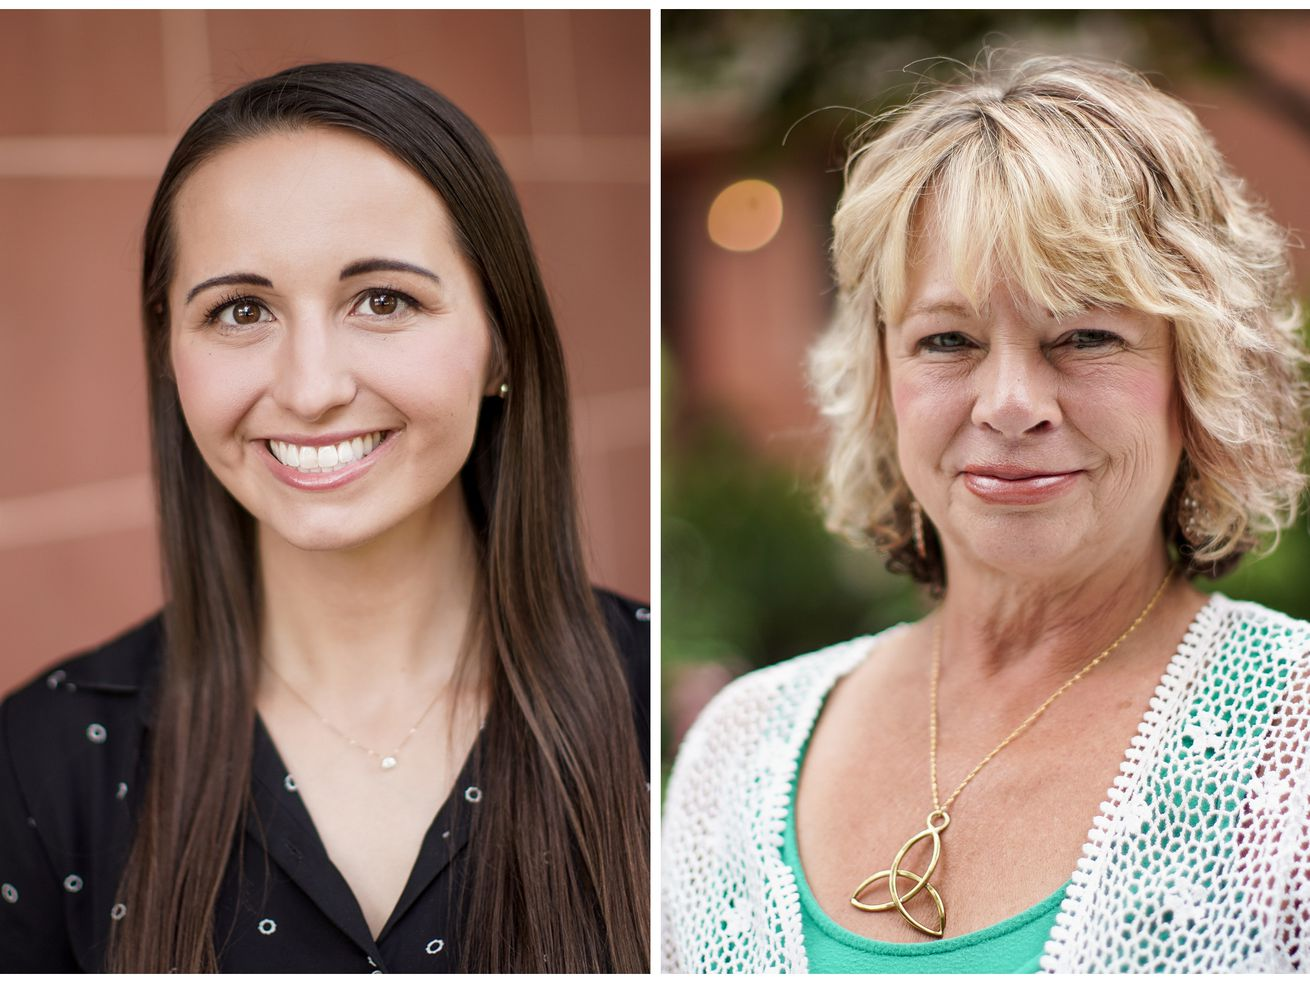 Deseret News' Evans, O'Donoghue capture gold, silver in prestigious science journalism competition